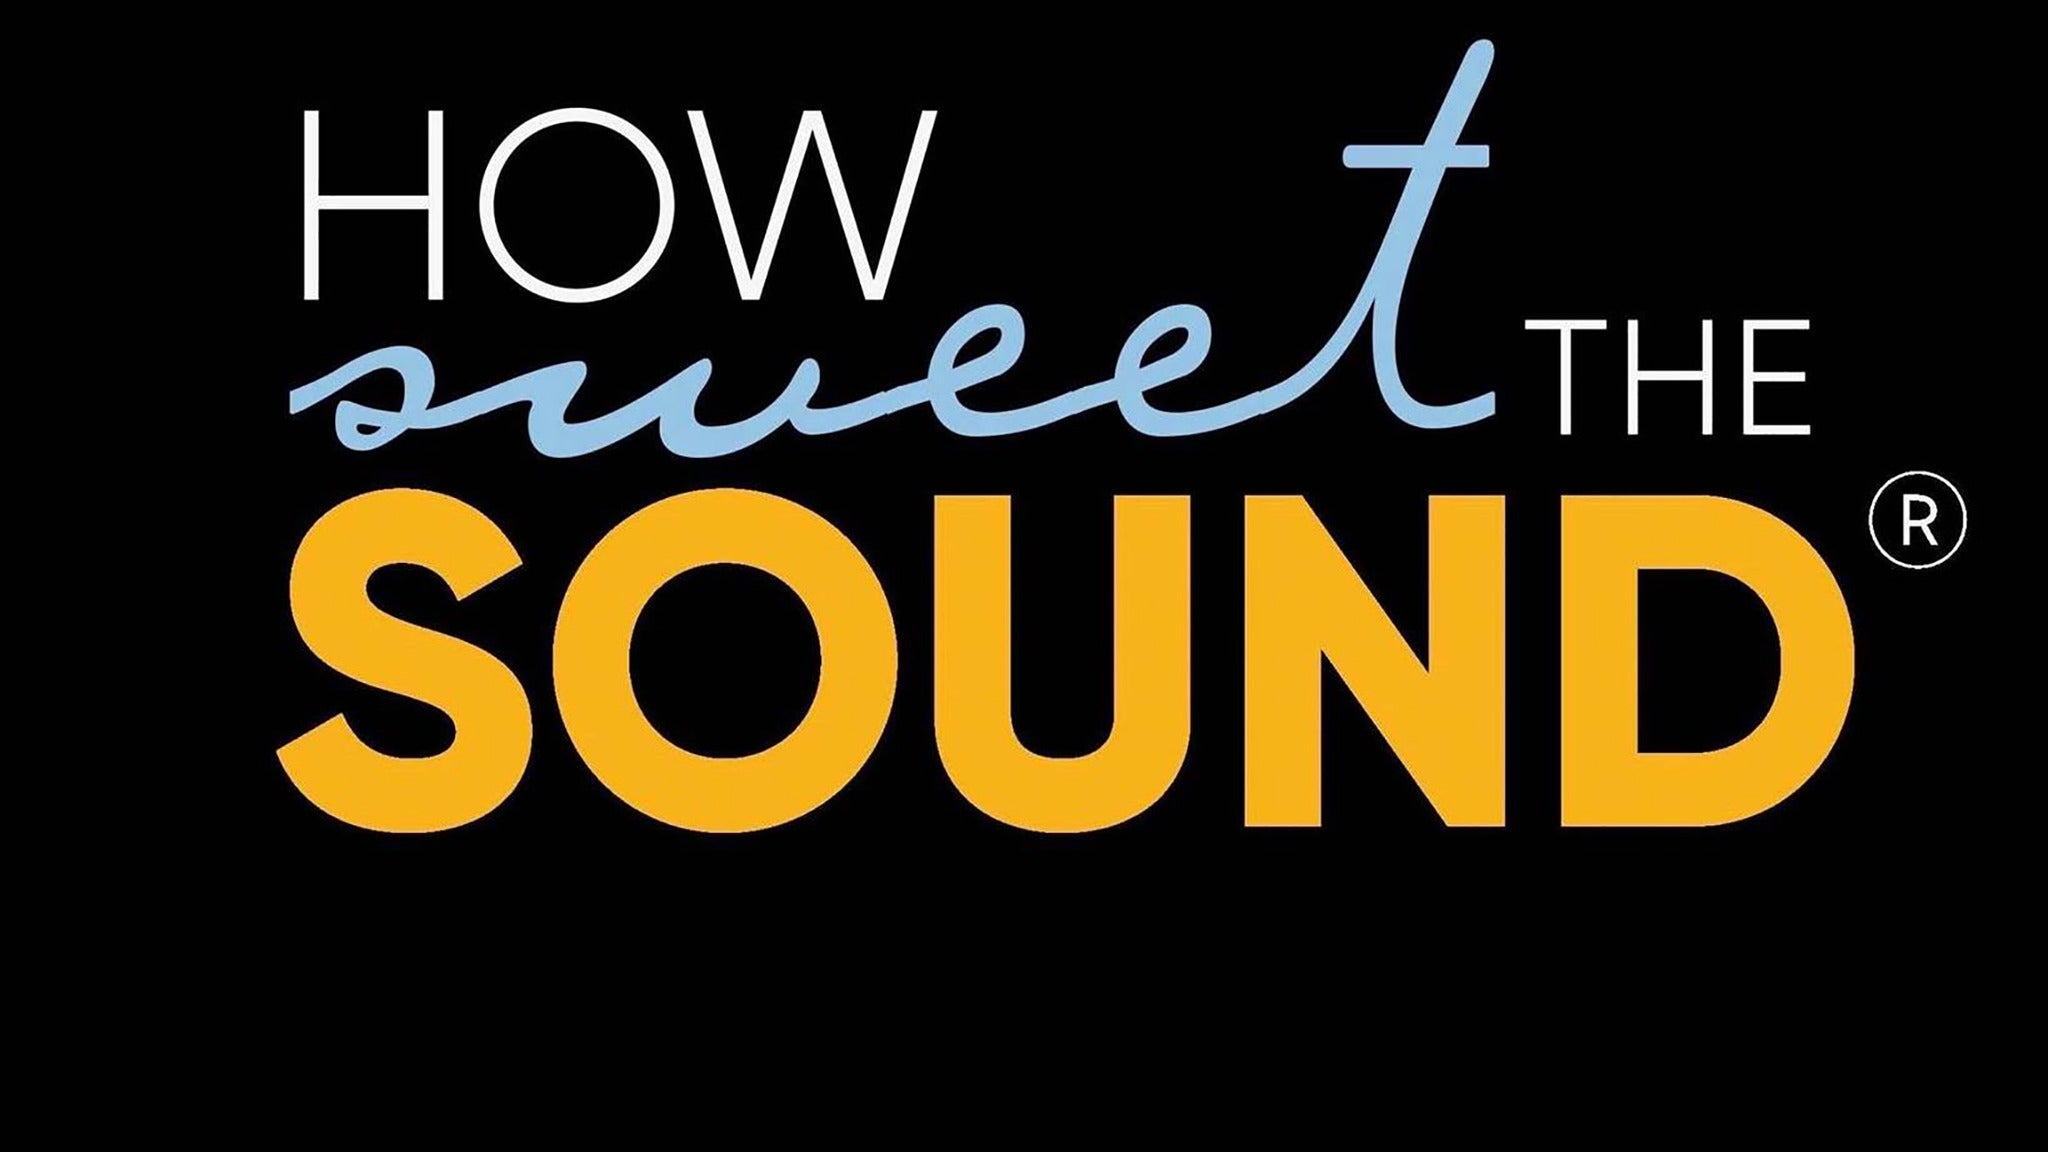 How Sweet the Sound presale password for show tickets in Greenville, SC (Bon Secours Wellness Arena )